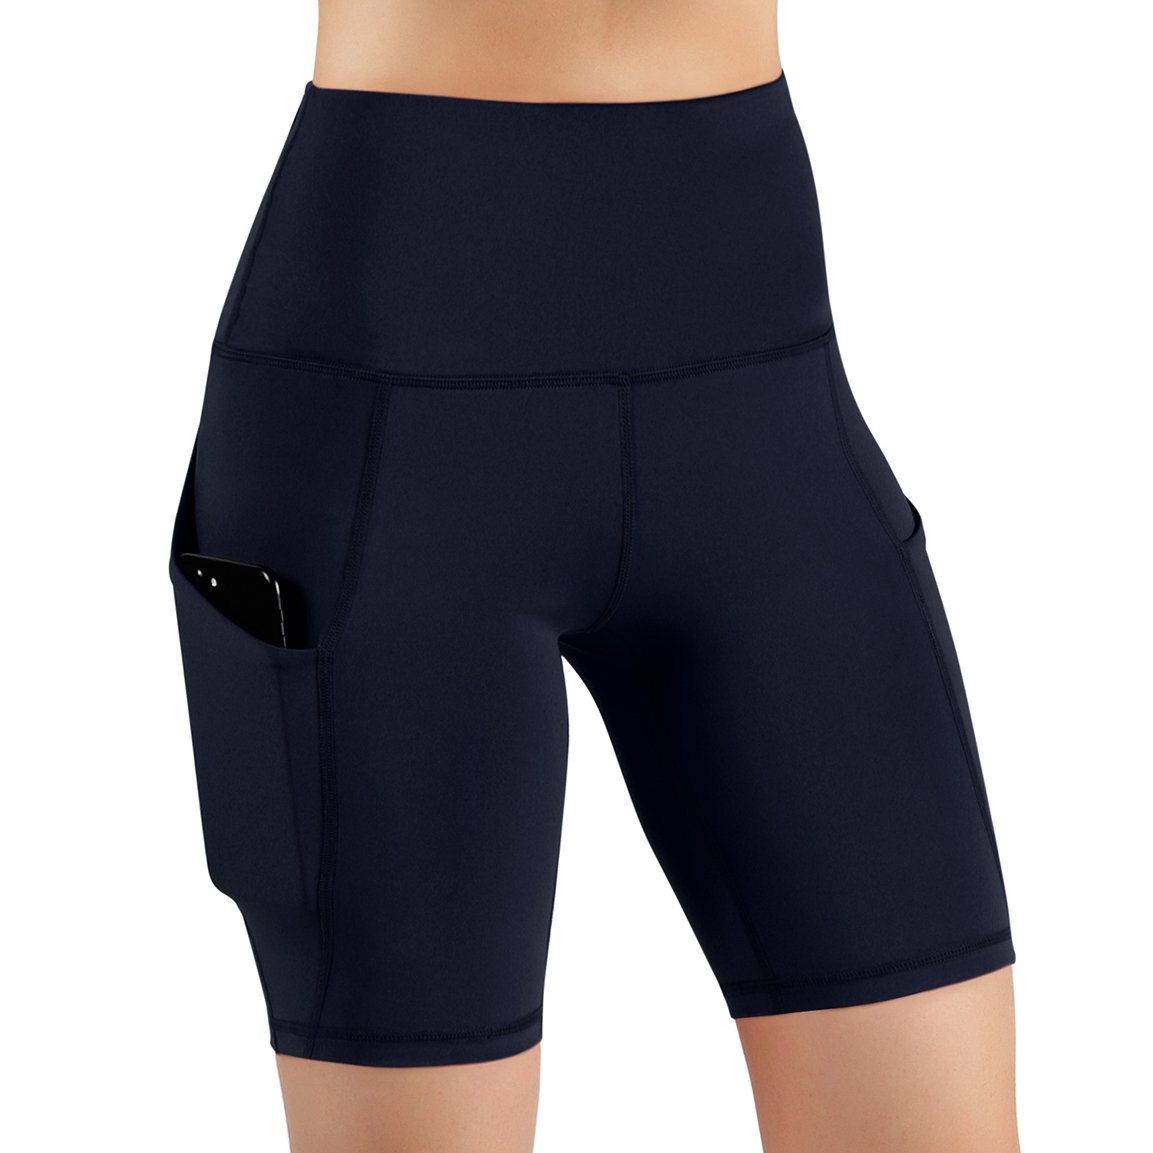 ODODOS High Waist Out Pocket Yoga Shots Tummy Control Workout Running 4 Way Stretch Yoga Shots, Navy, XX-Large